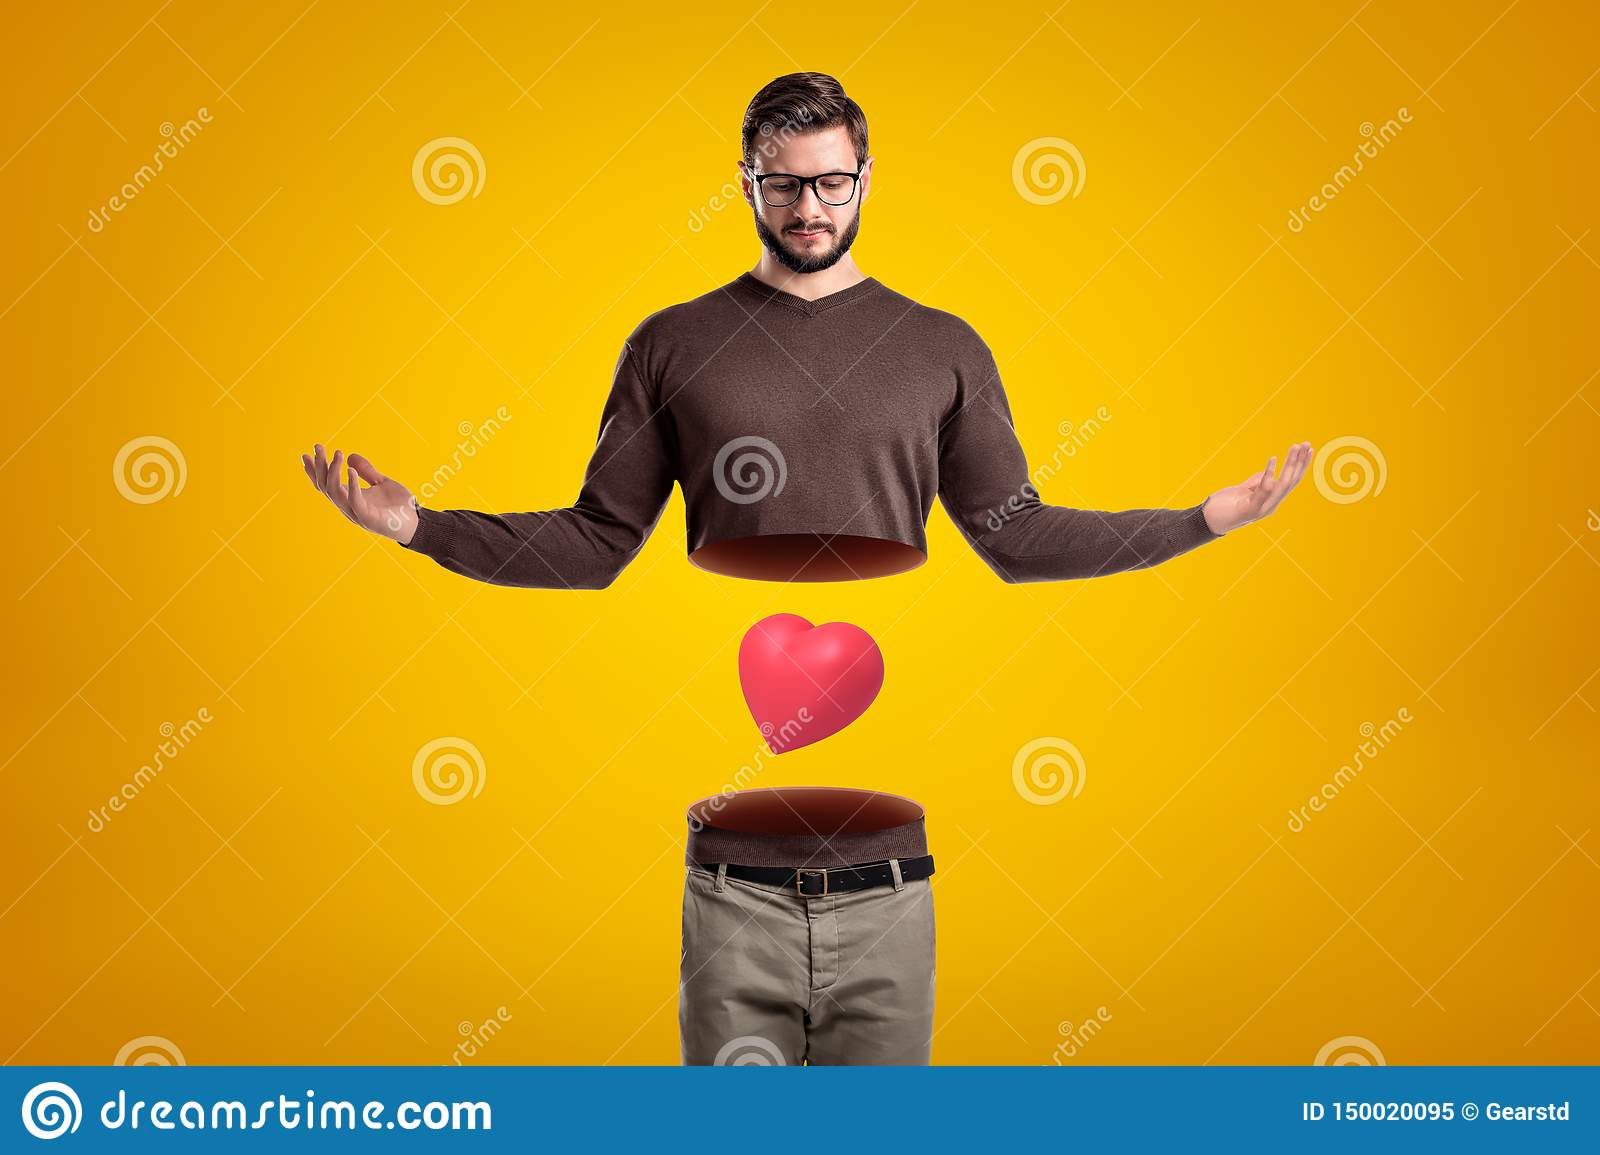 Young man with body cut in two at waist, upper body in air, with cute red valentine heart levitating between upper and